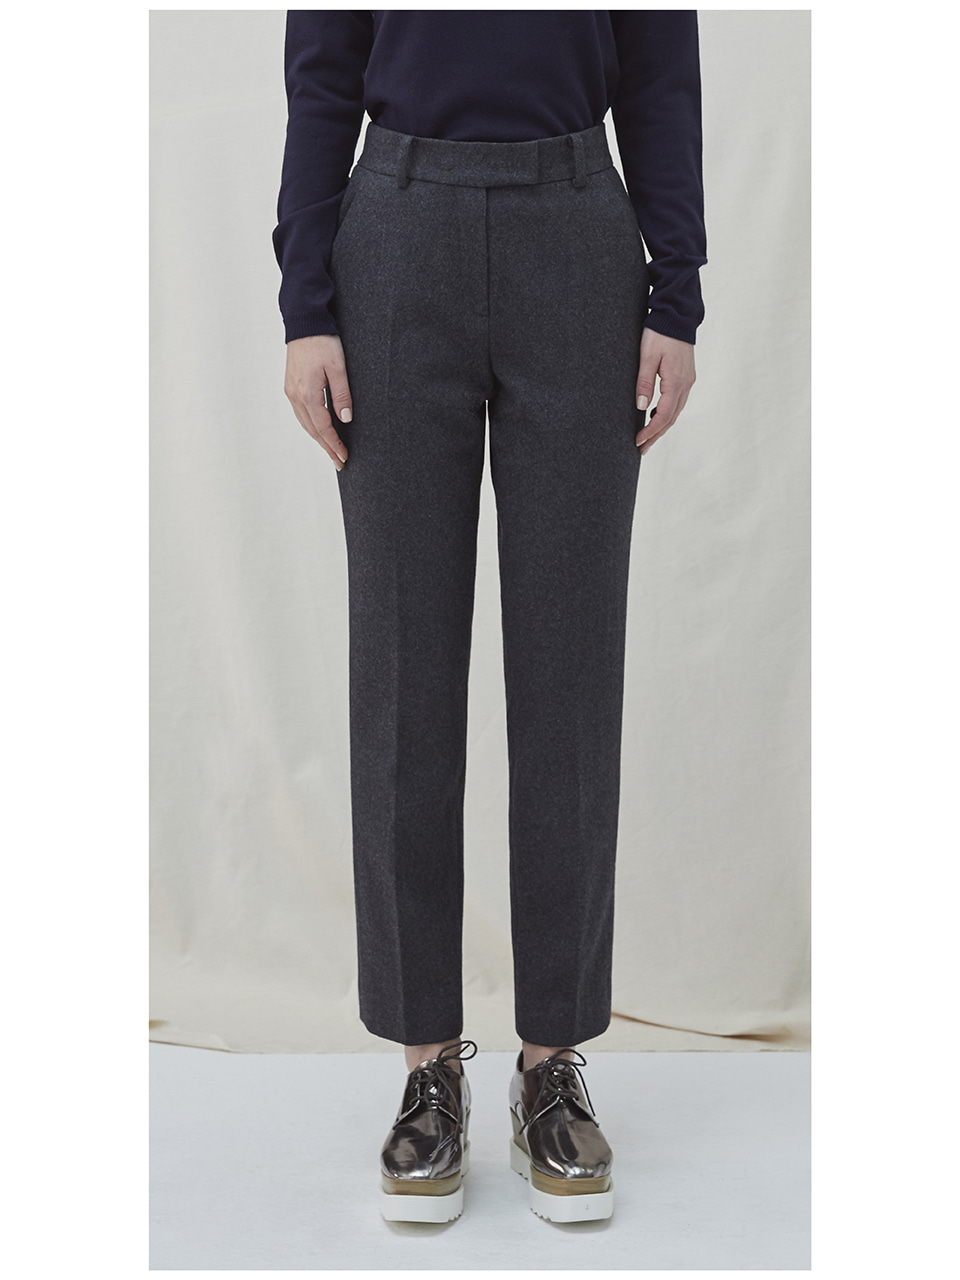 Embroidered Wool Pants - charcoal